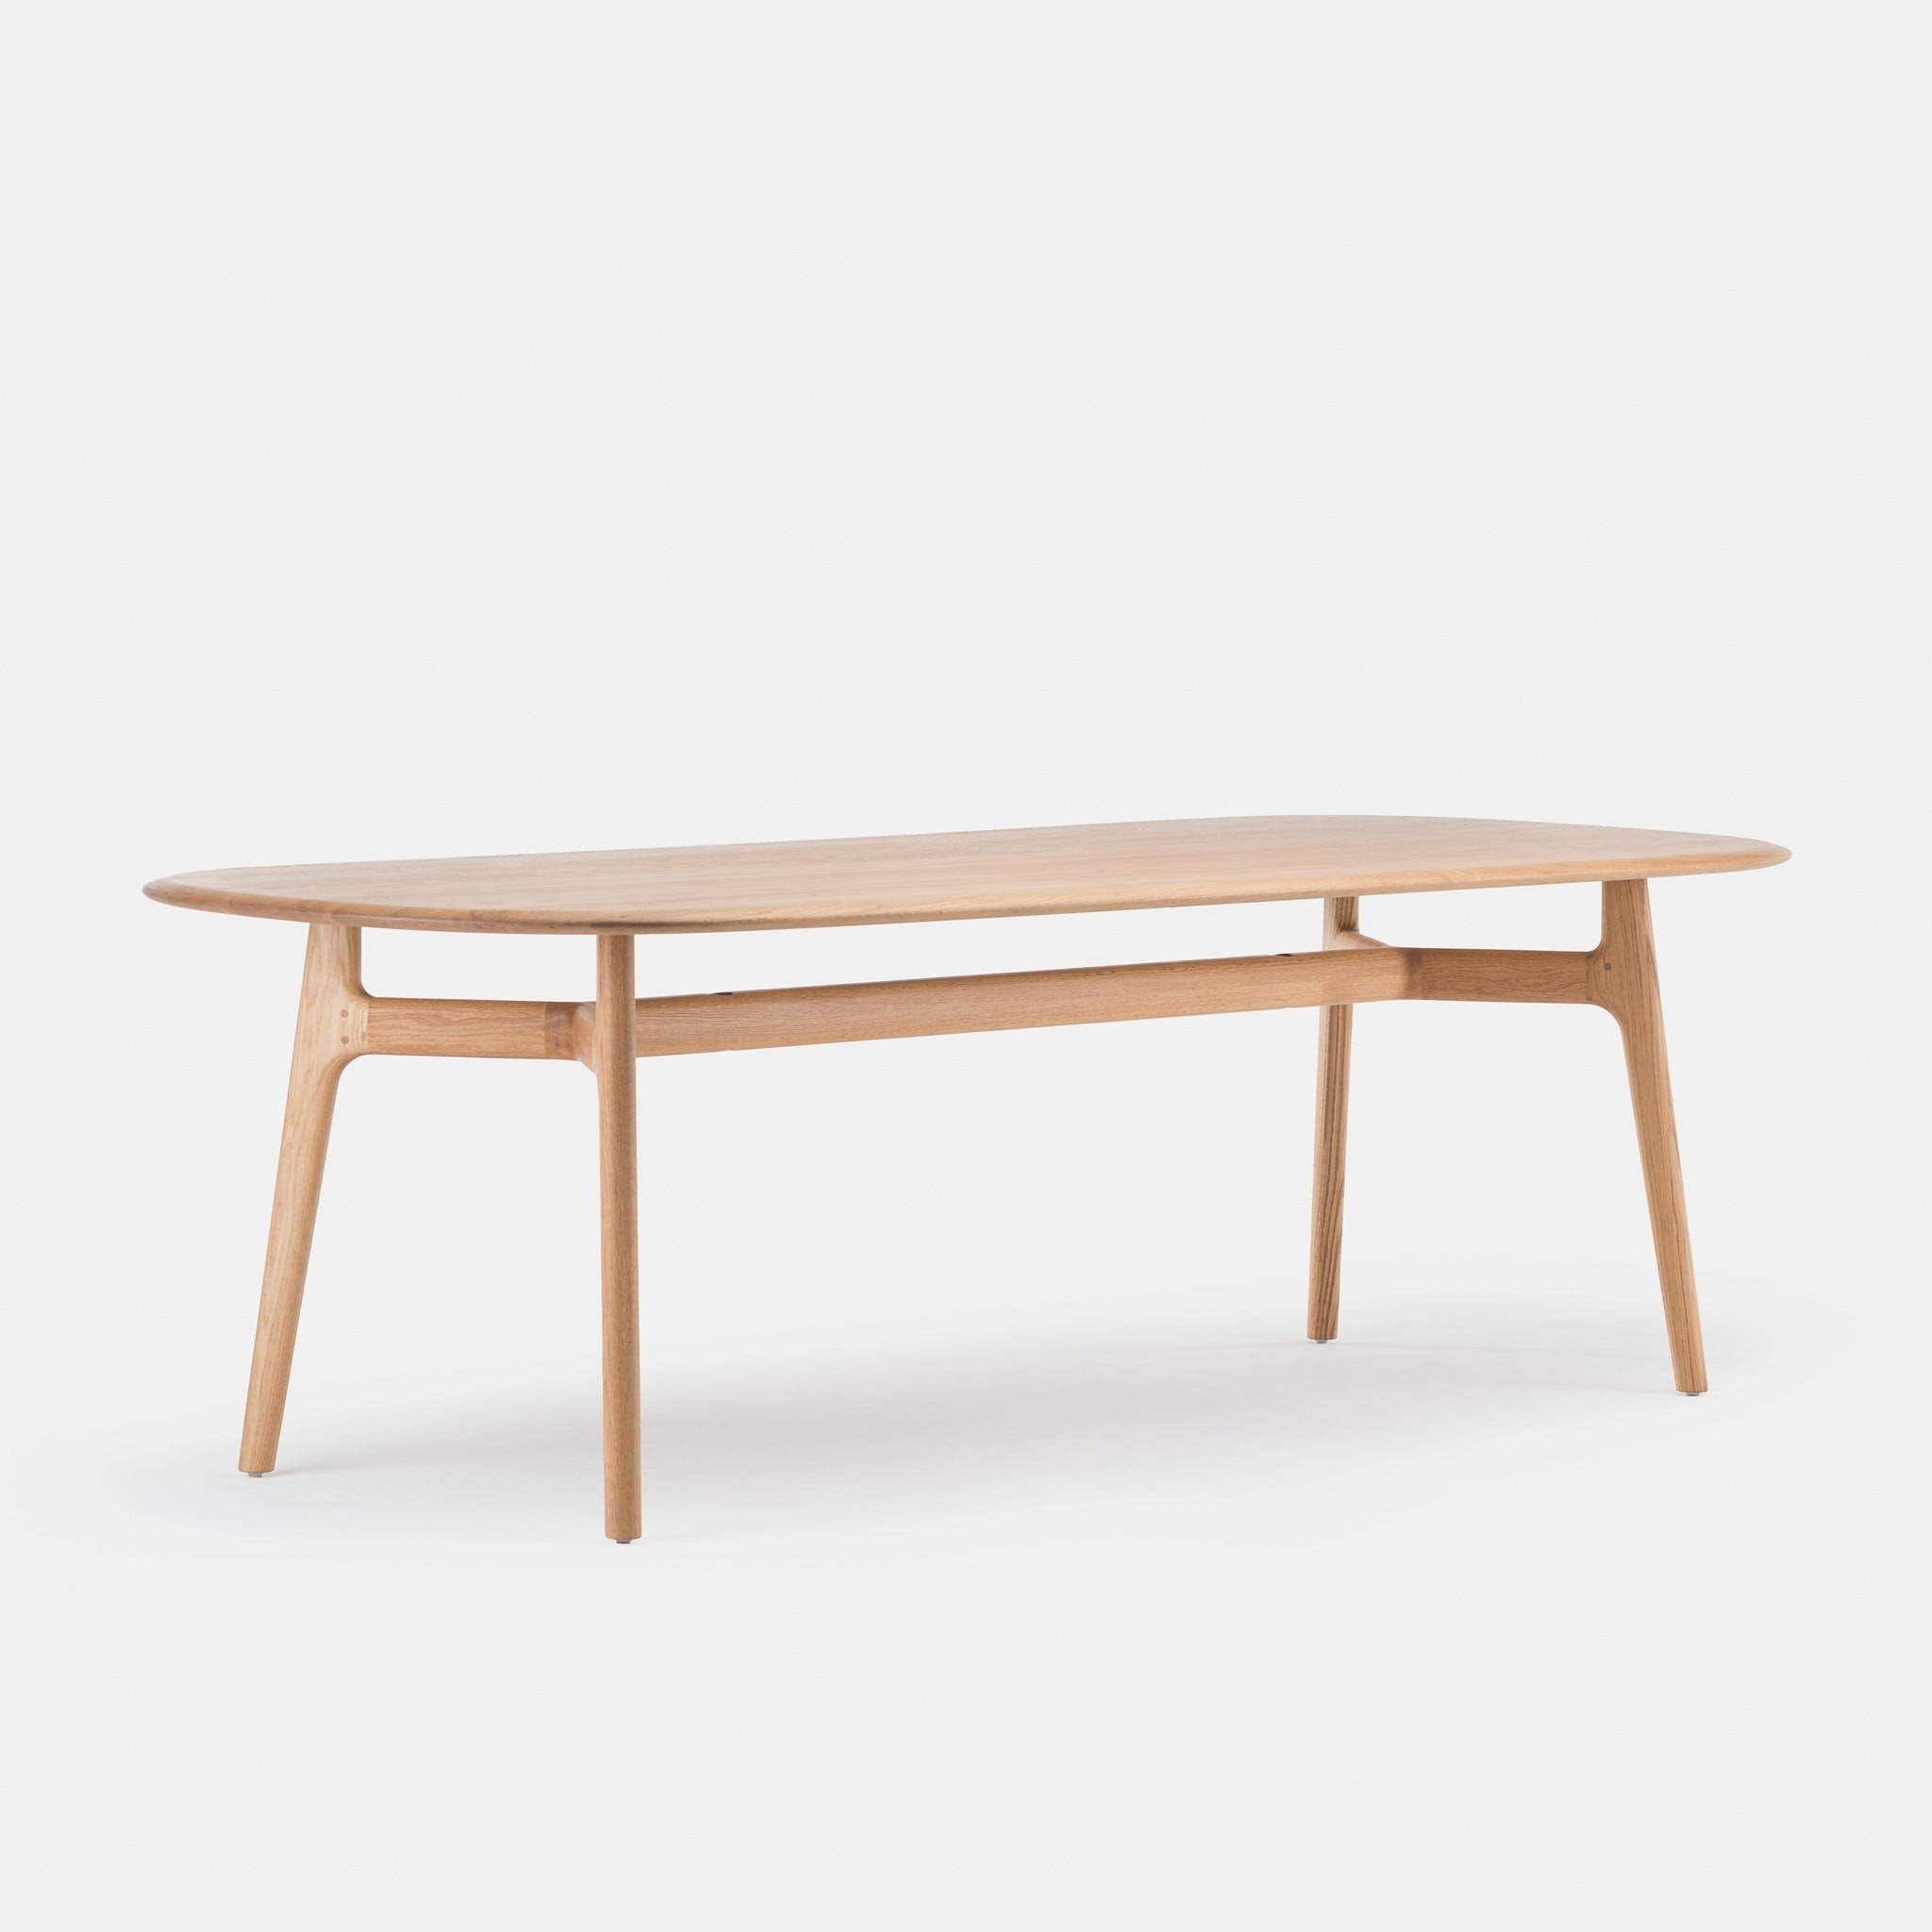 Solo Oblong Table by Neri & Hu